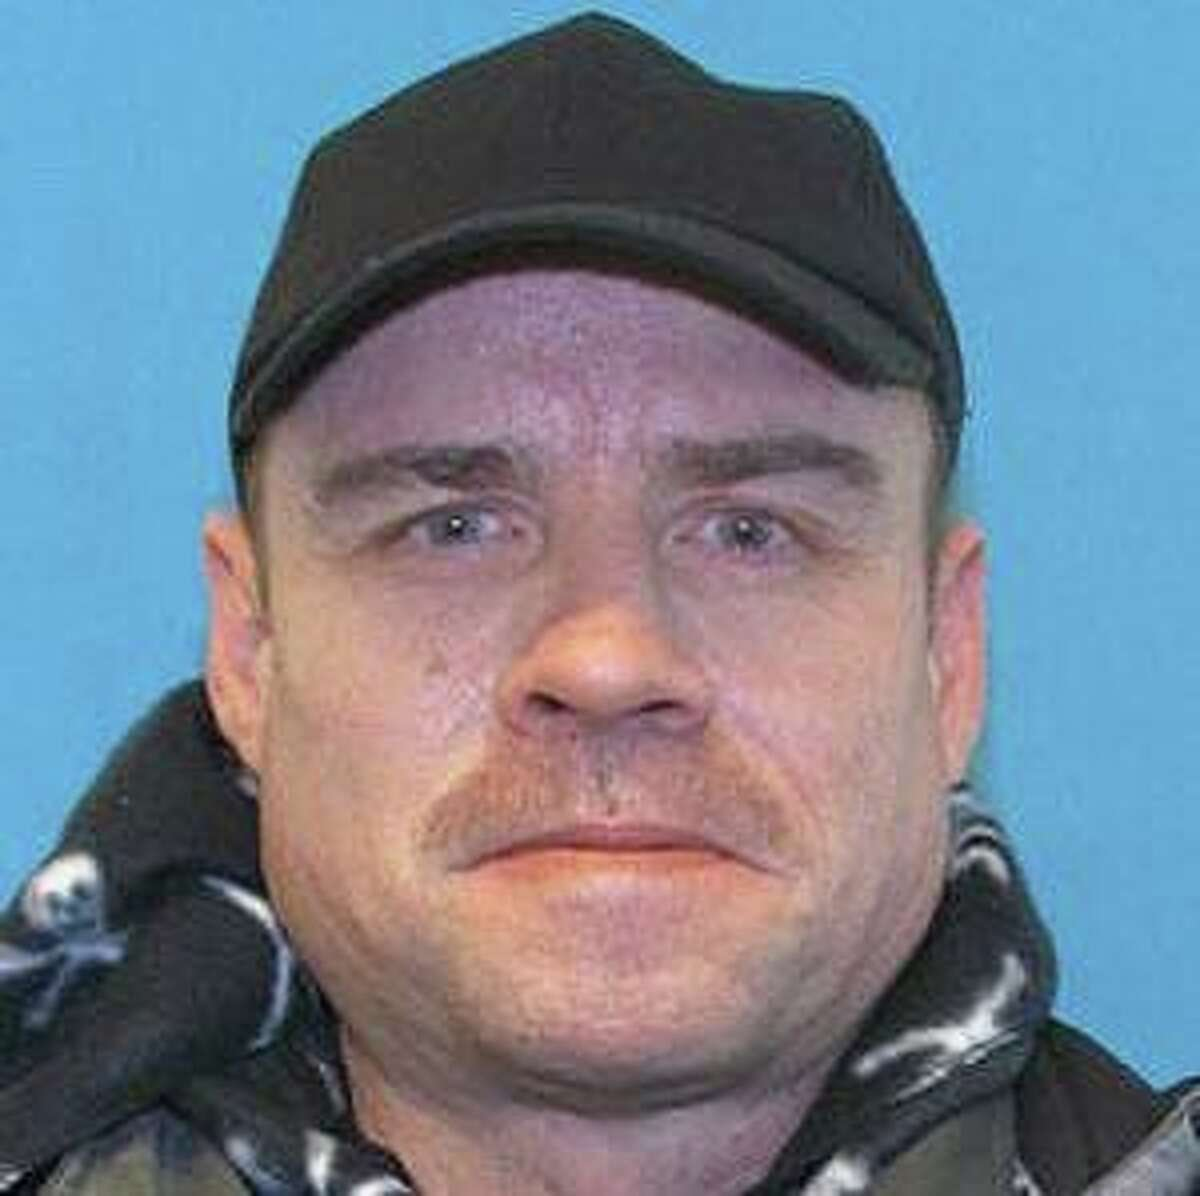 Todd Smith, 57, was last seen in the area of 93 Mill Plain Road in Danbury, Conn., on Jan. 16, 2021, police said.